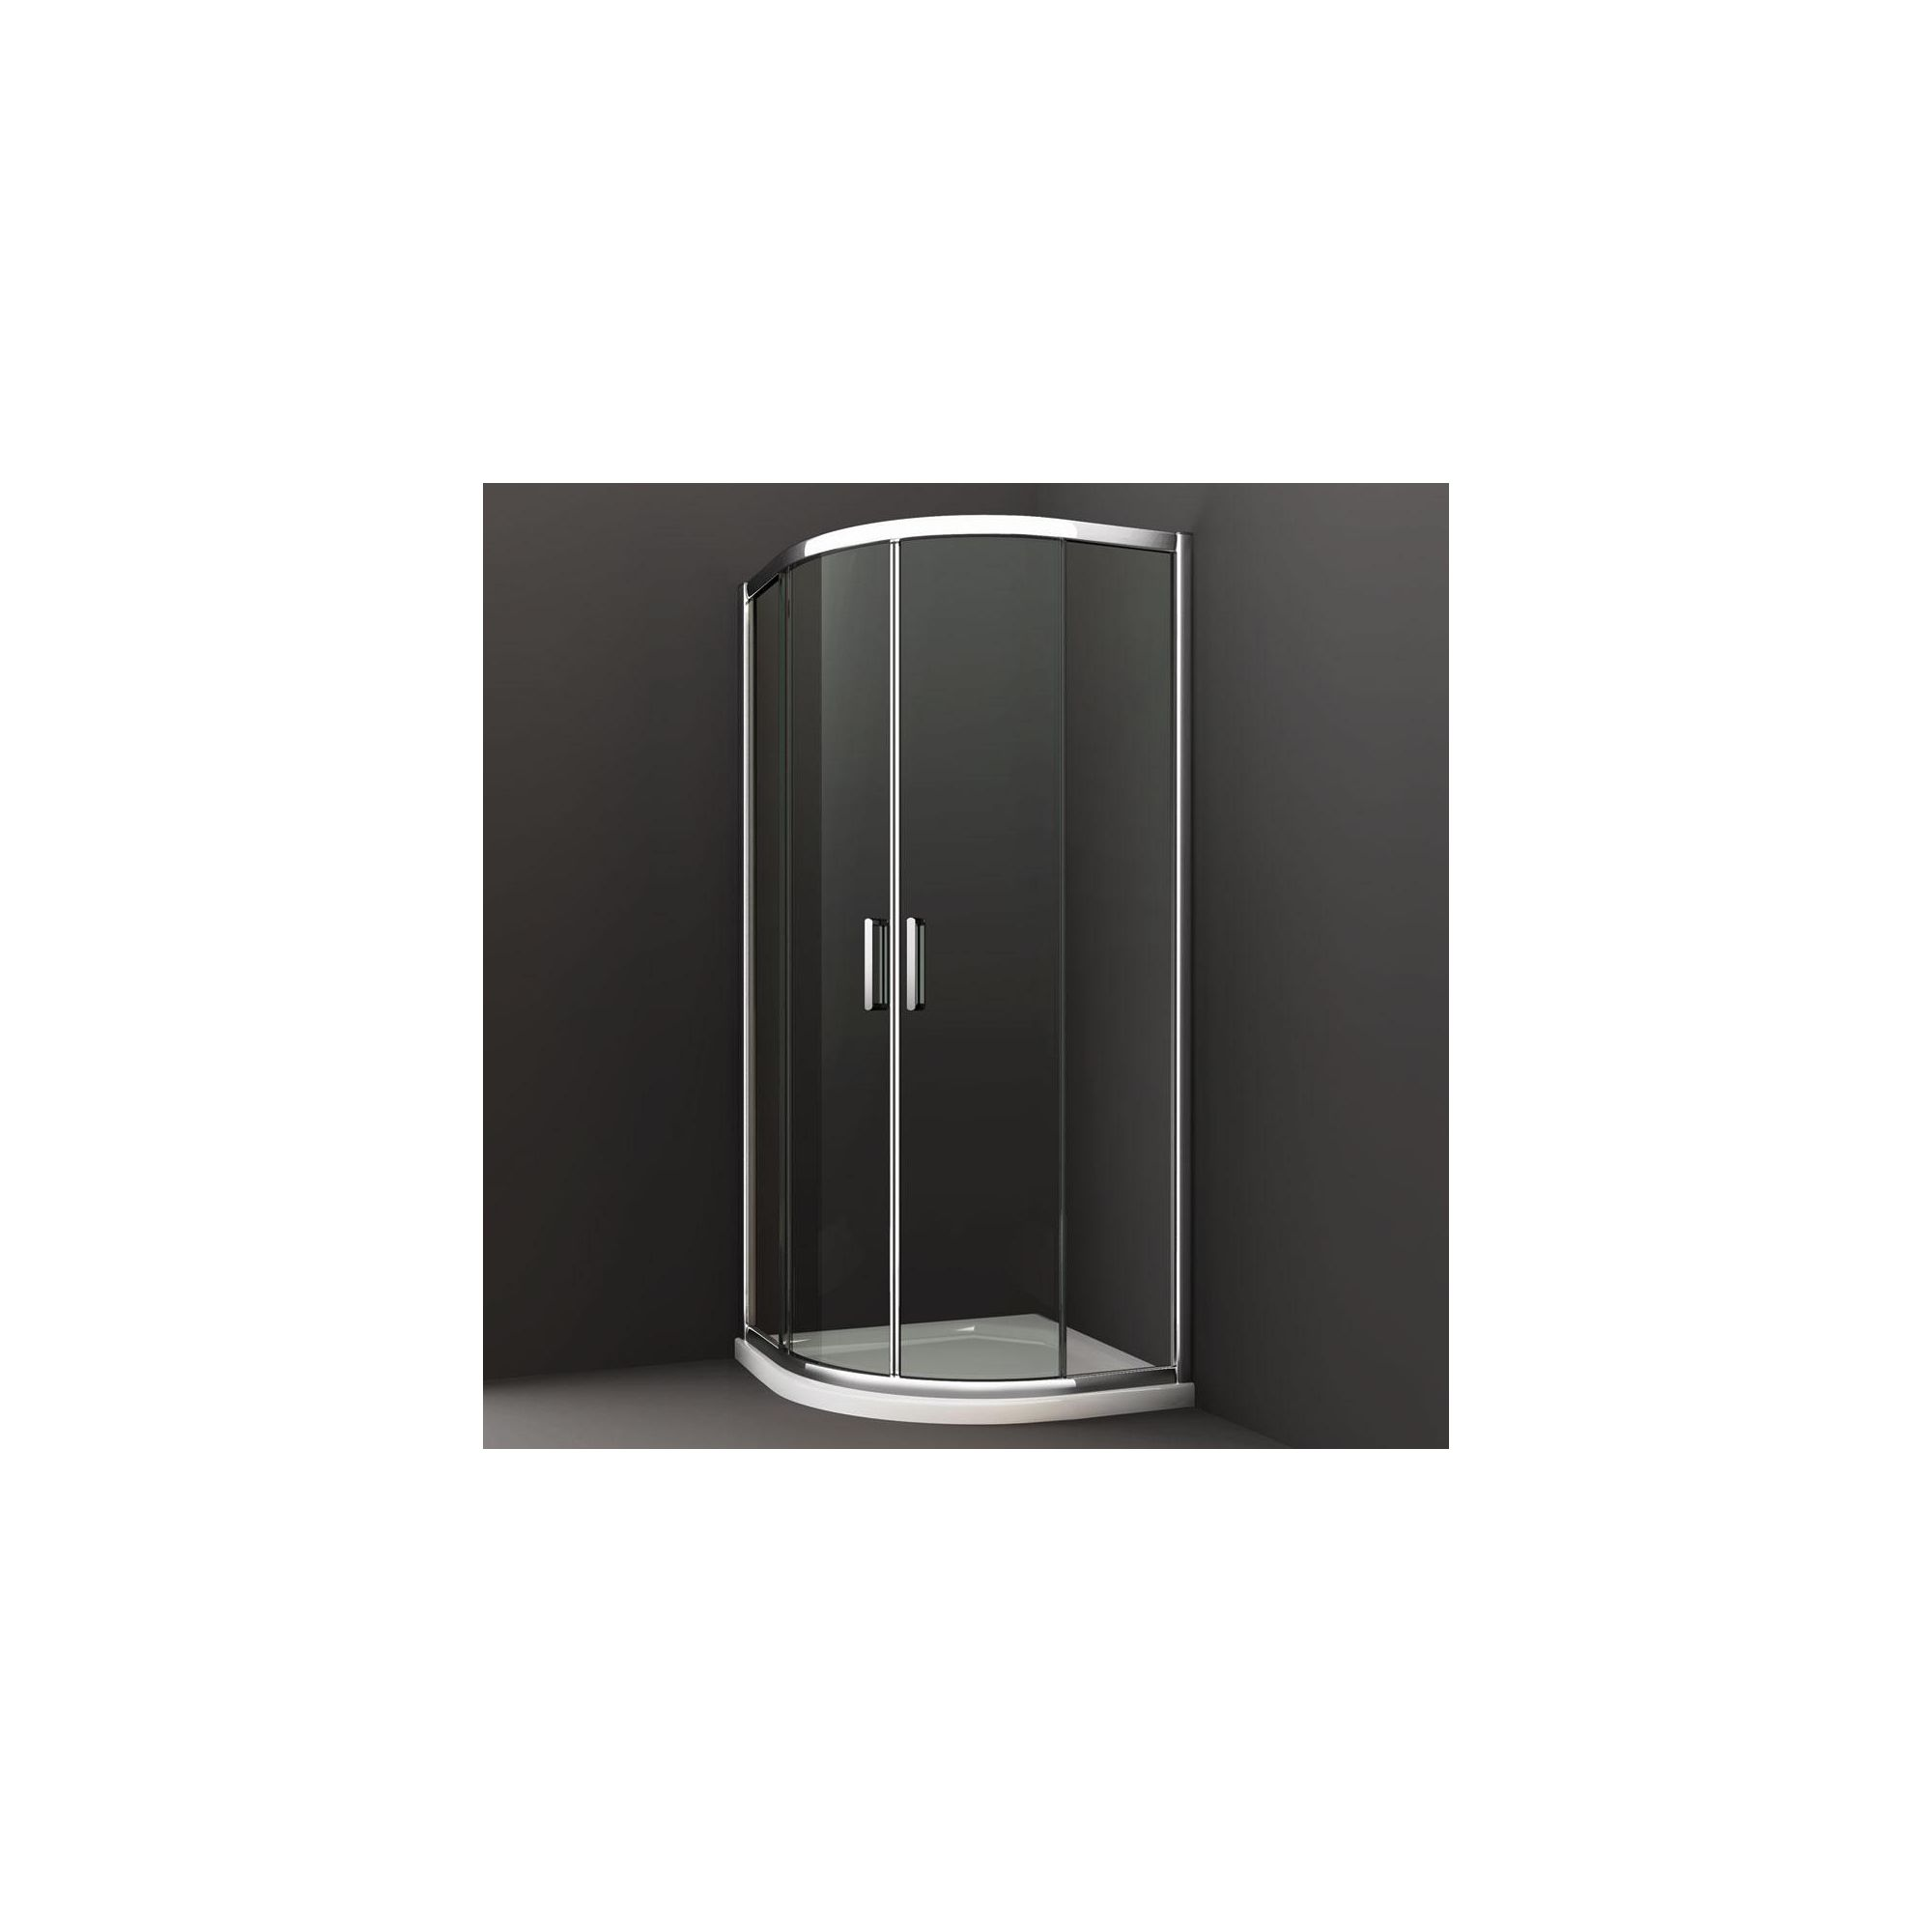 Merlyn Series 8 Double Quadrant Shower Door, 900mm x 900mm, Chrome Frame, 8mm Glass at Tesco Direct